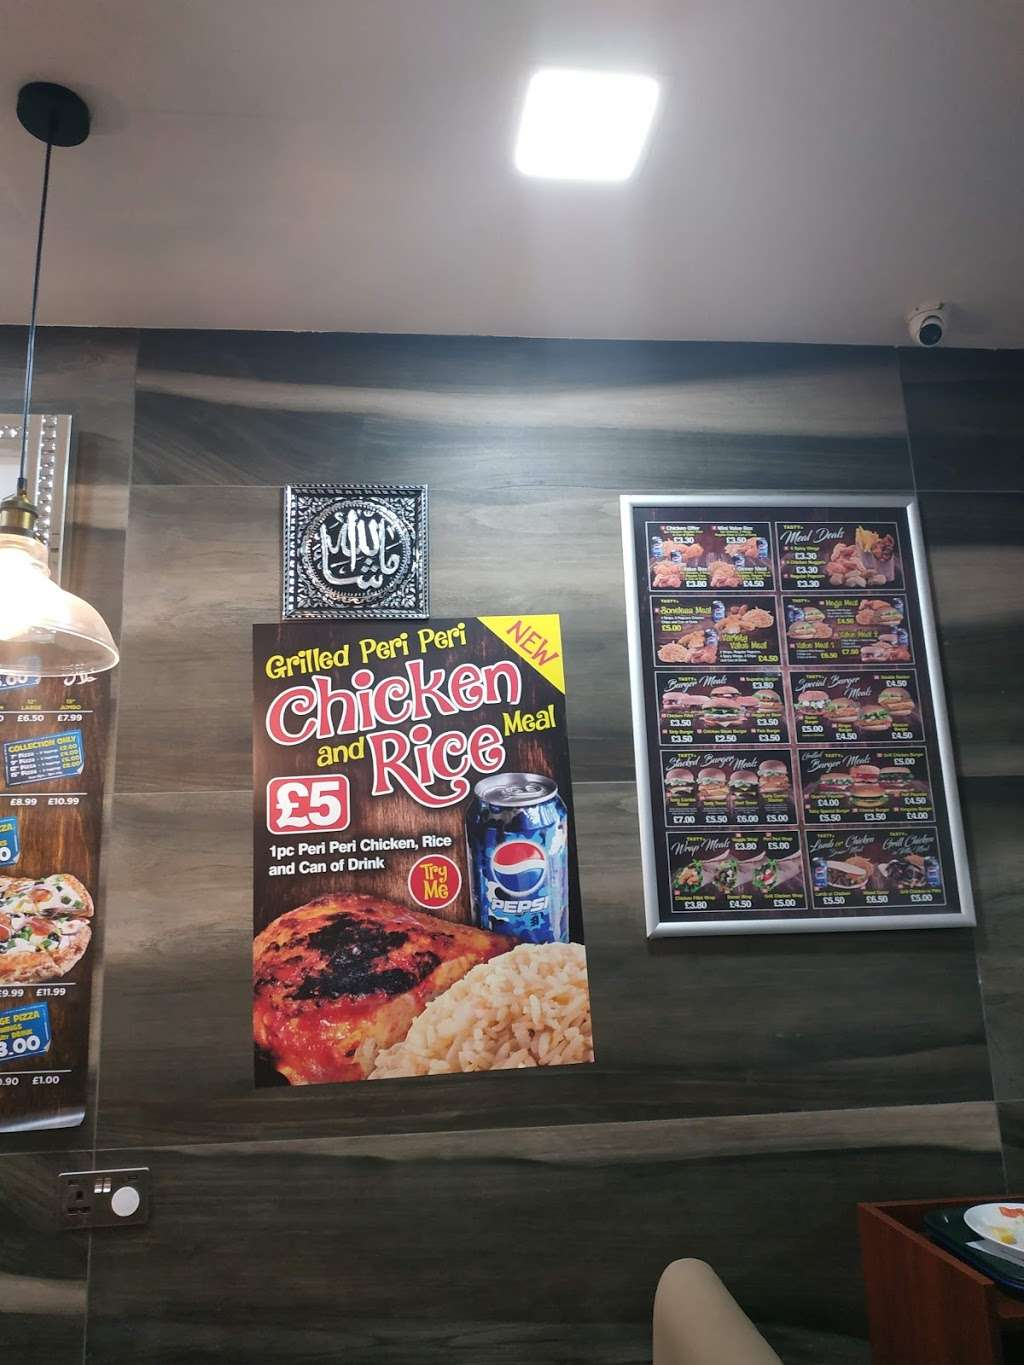 Tasty Chicken - meal takeaway  | Photo 8 of 10 | Address: 198 Ilford Ln, Ilford IG1 2LJ, UK | Phone: 020 8553 9988